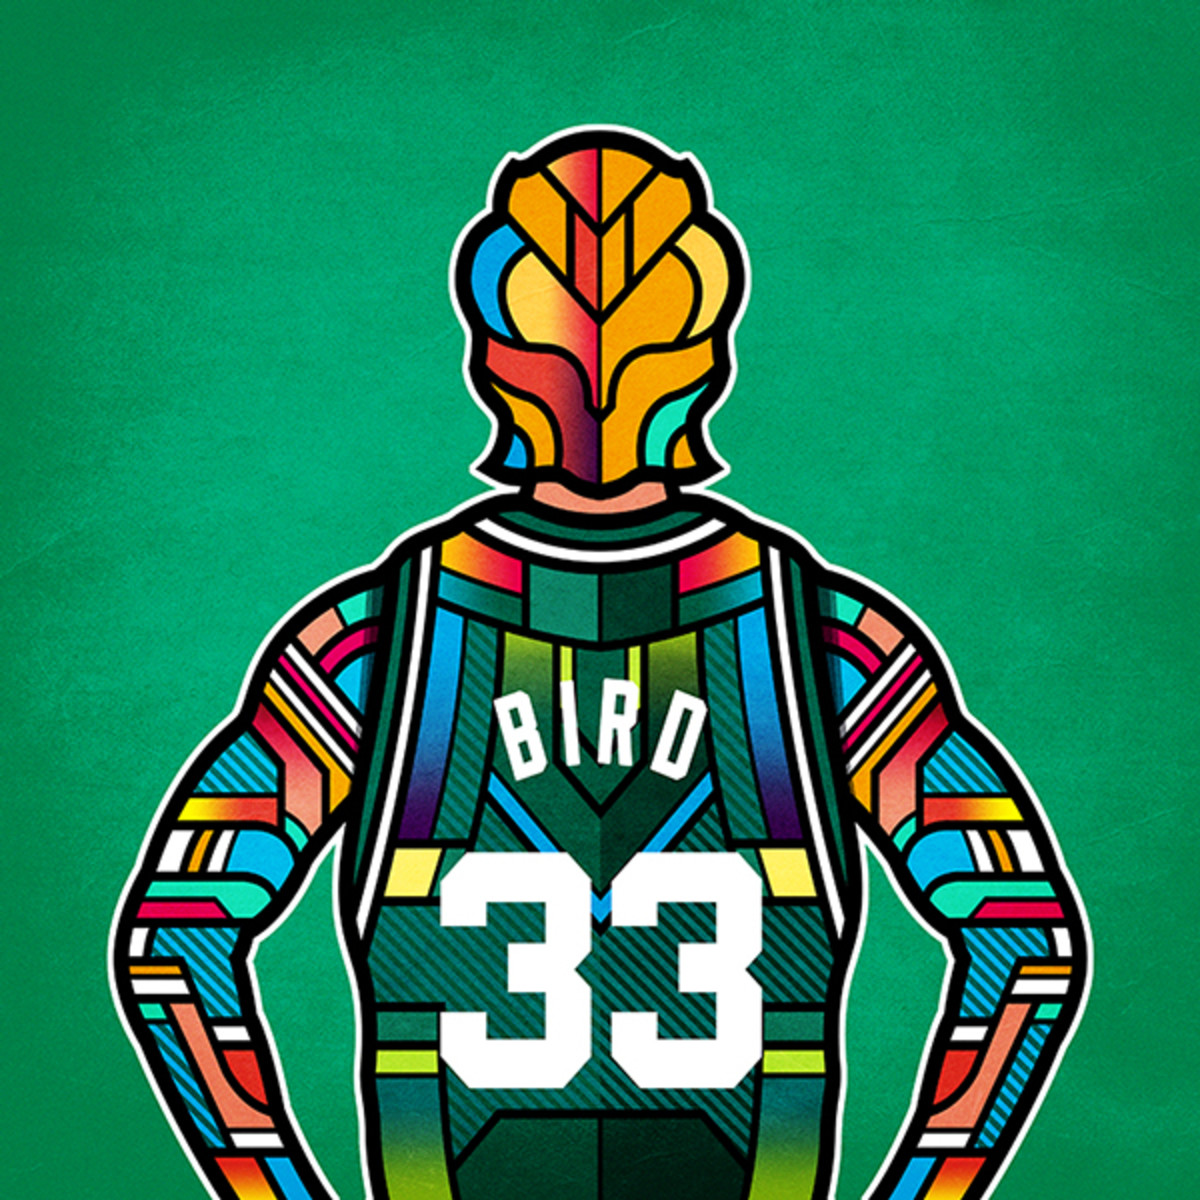 Larry-bird-art.jpg